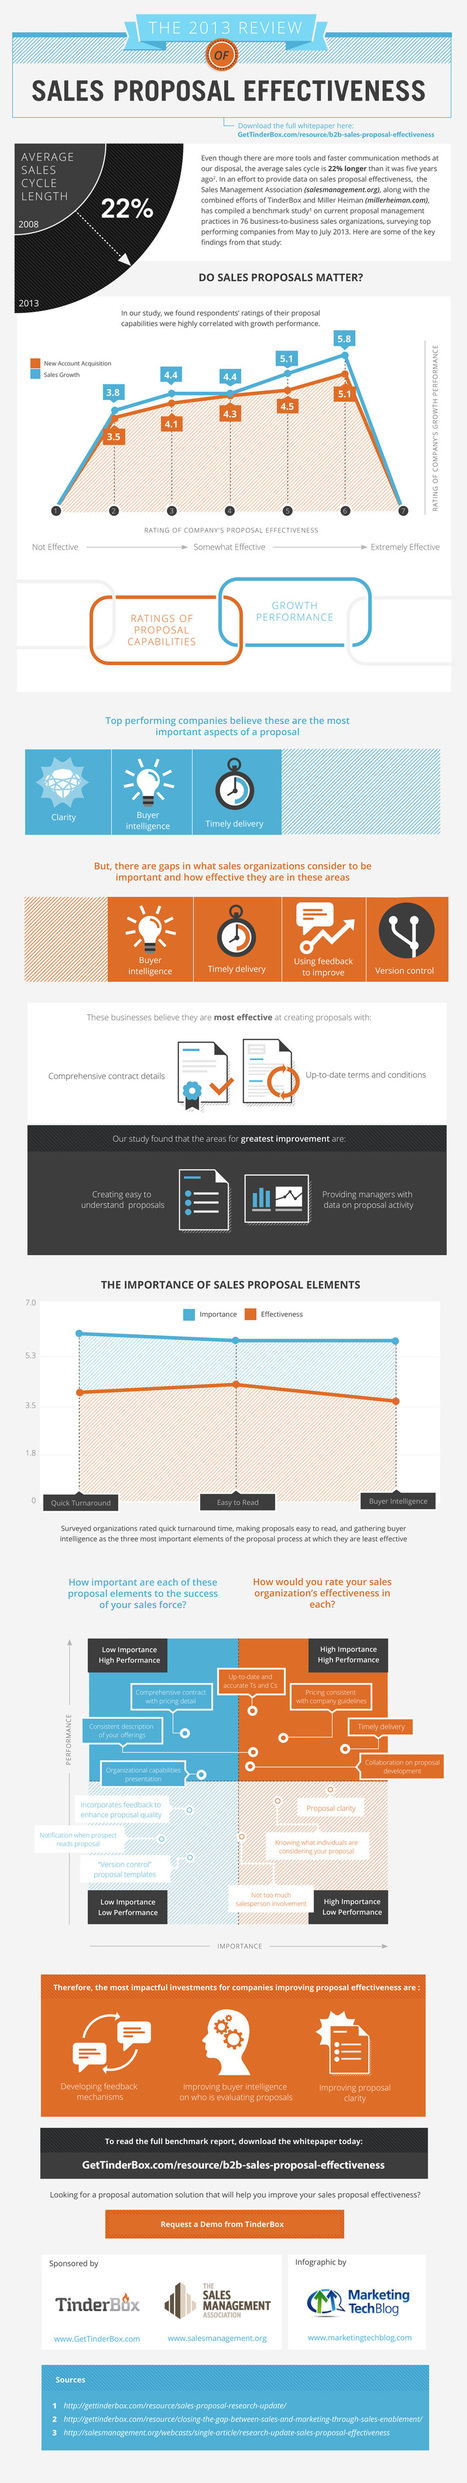 Infographic: Improving Sales Proposal Effectiveness - Marketing Technology Blog | Digital-News on Scoop.it today | Scoop.it